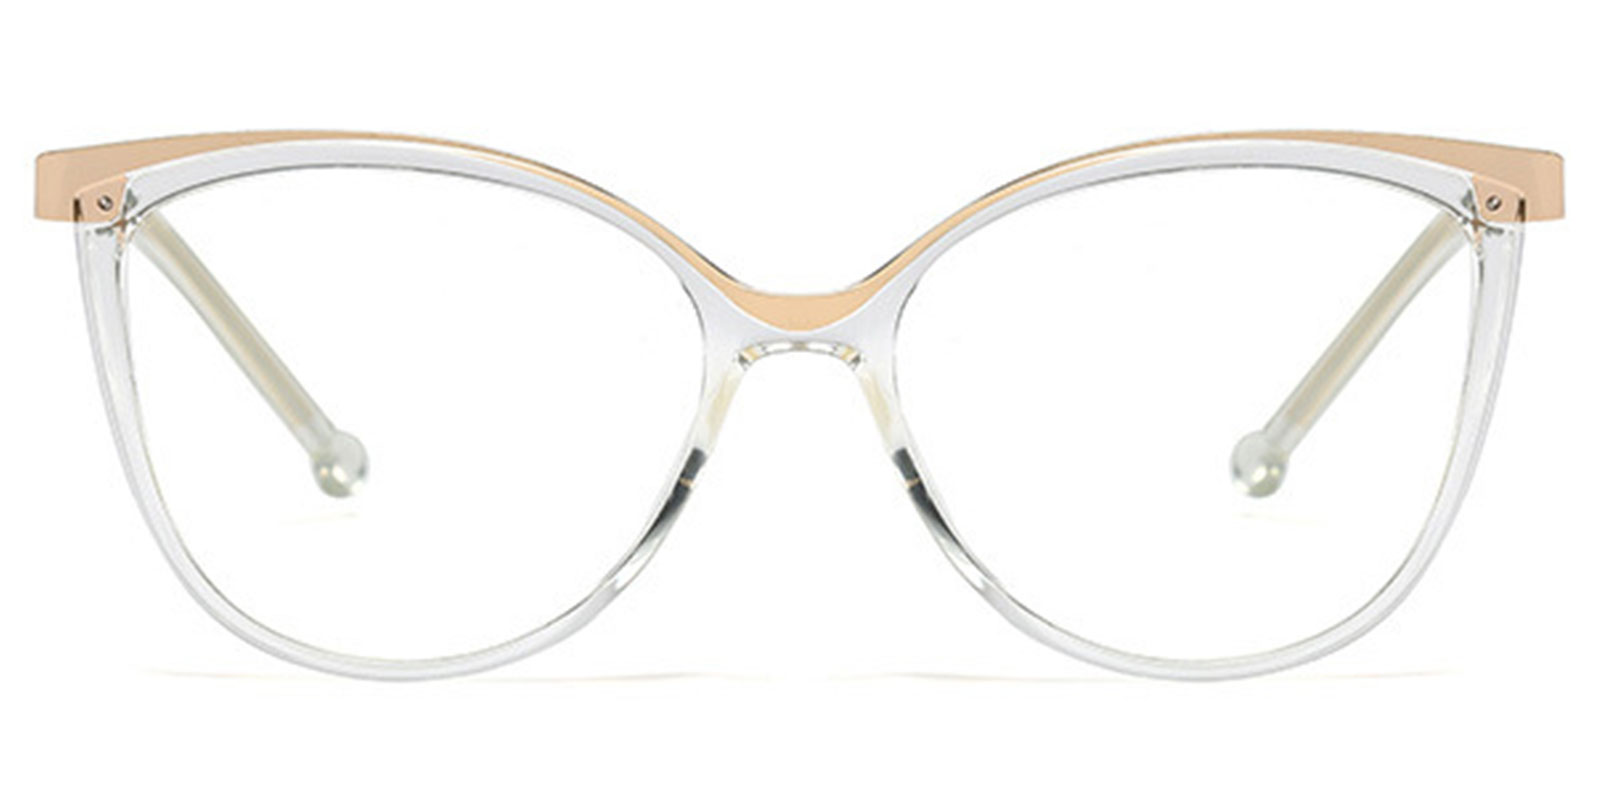 Baltasaru-New Fashion Glasses for Women with High Index Lenses